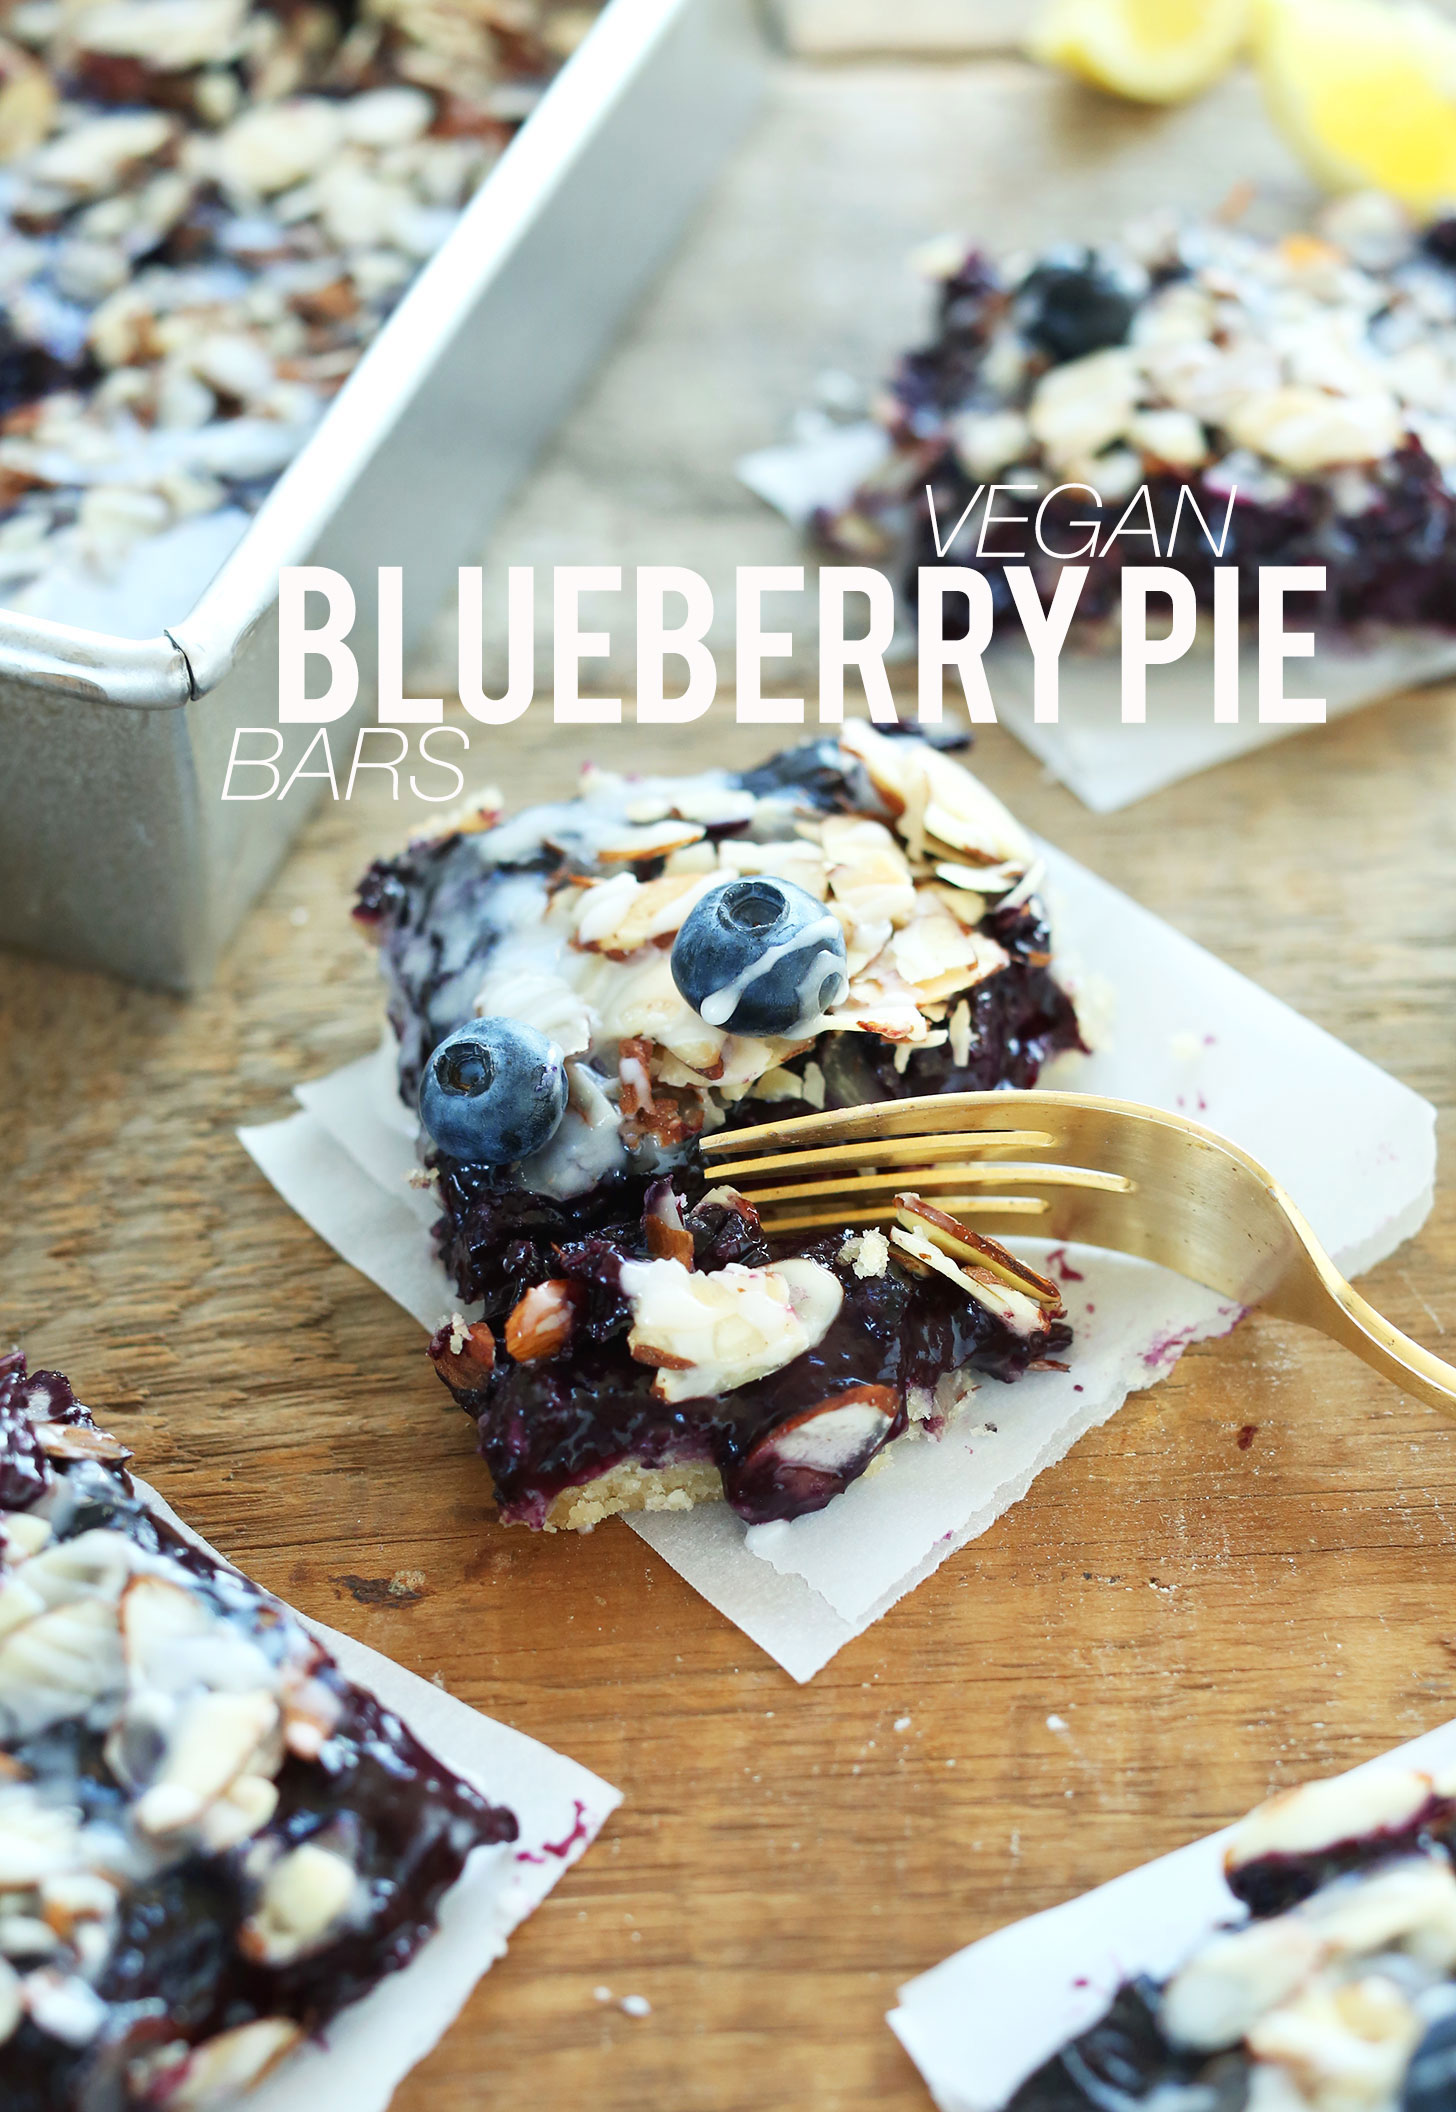 Grabbing a bite of a Vegan Blueberry Pie Bar for a delicious summer dessert